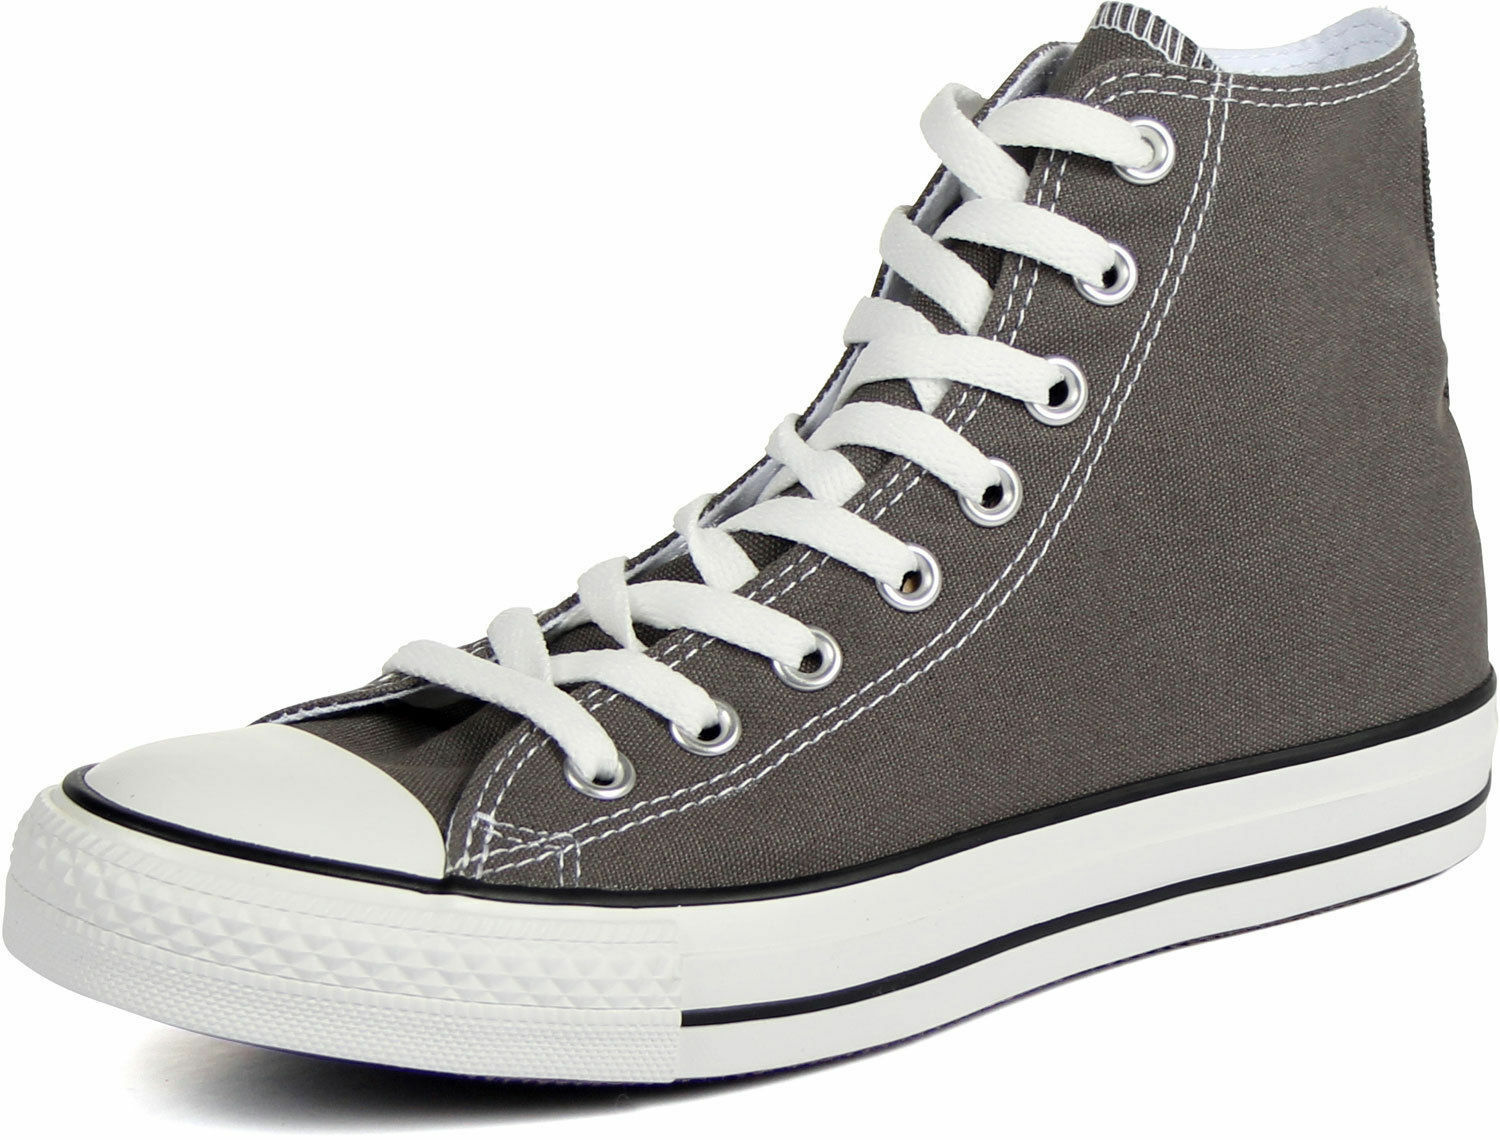 CONVERSE ALL STAR CHUCK TAYLOR HI SEASNL MEN SHOES GREY WHITE J793 SIZE 11 NEW